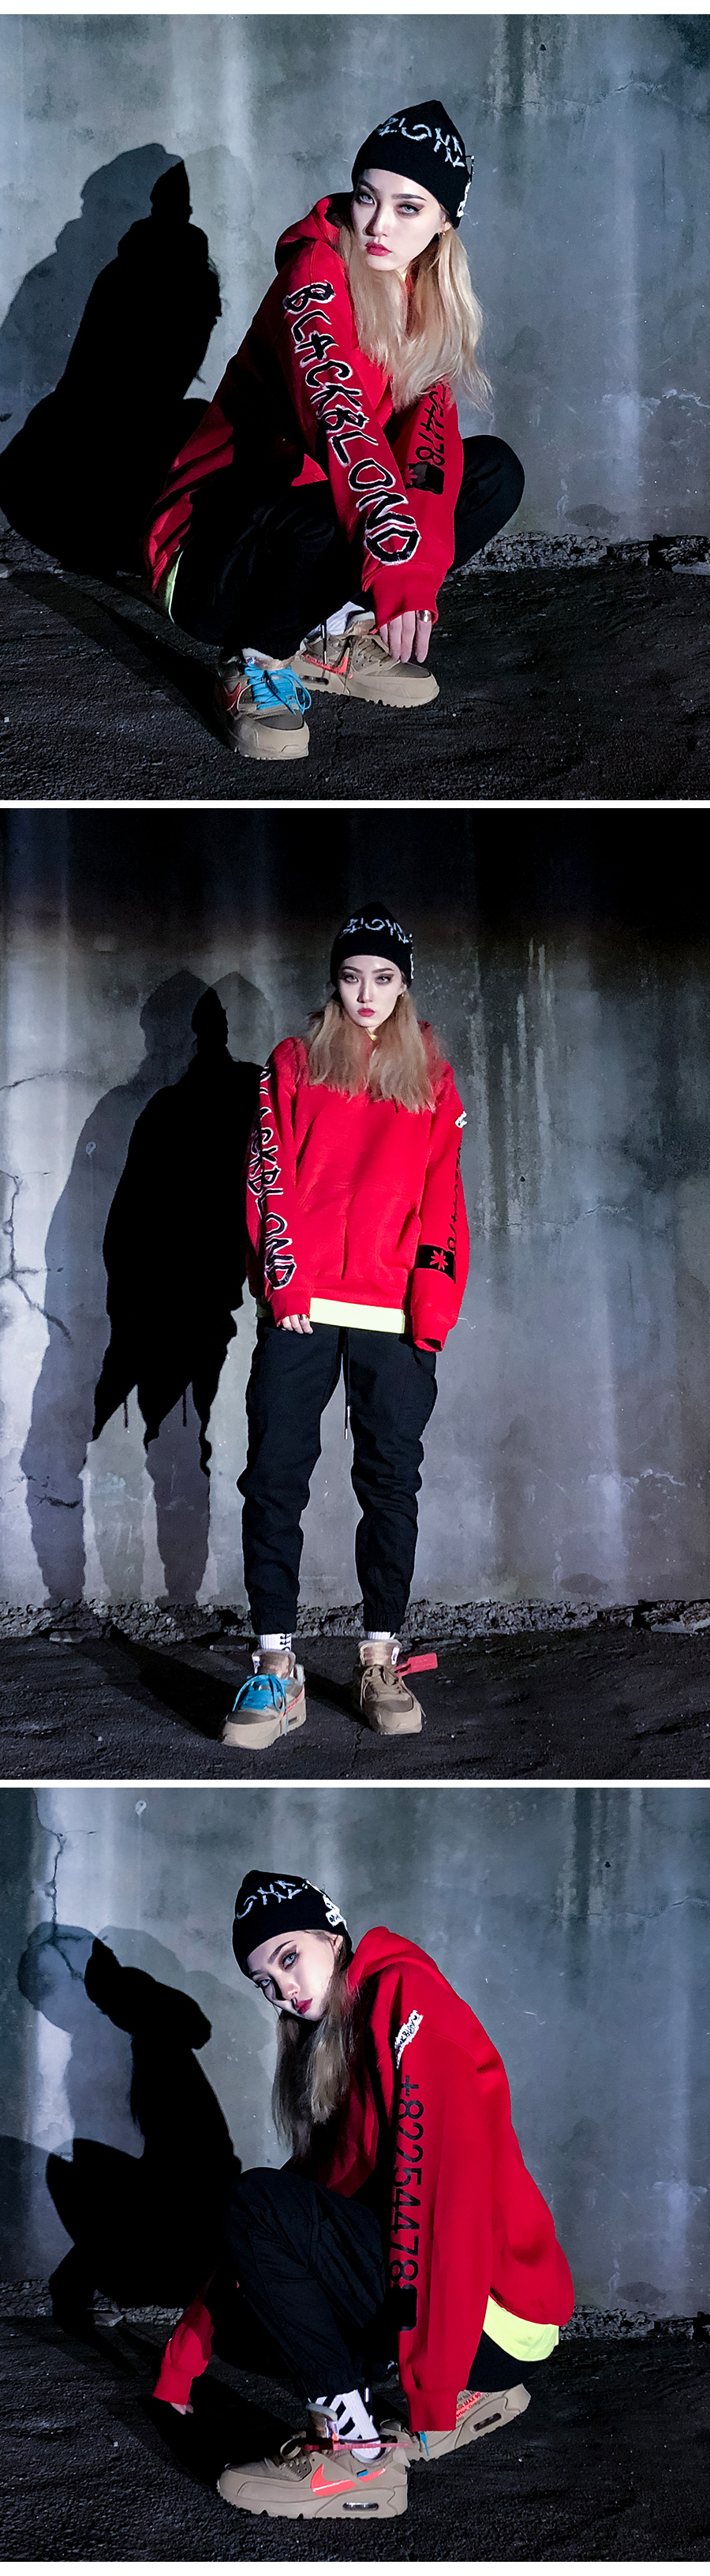 블랙블론드 BLACKBLOND - BBD Graffiti Number Hoodie (Red)